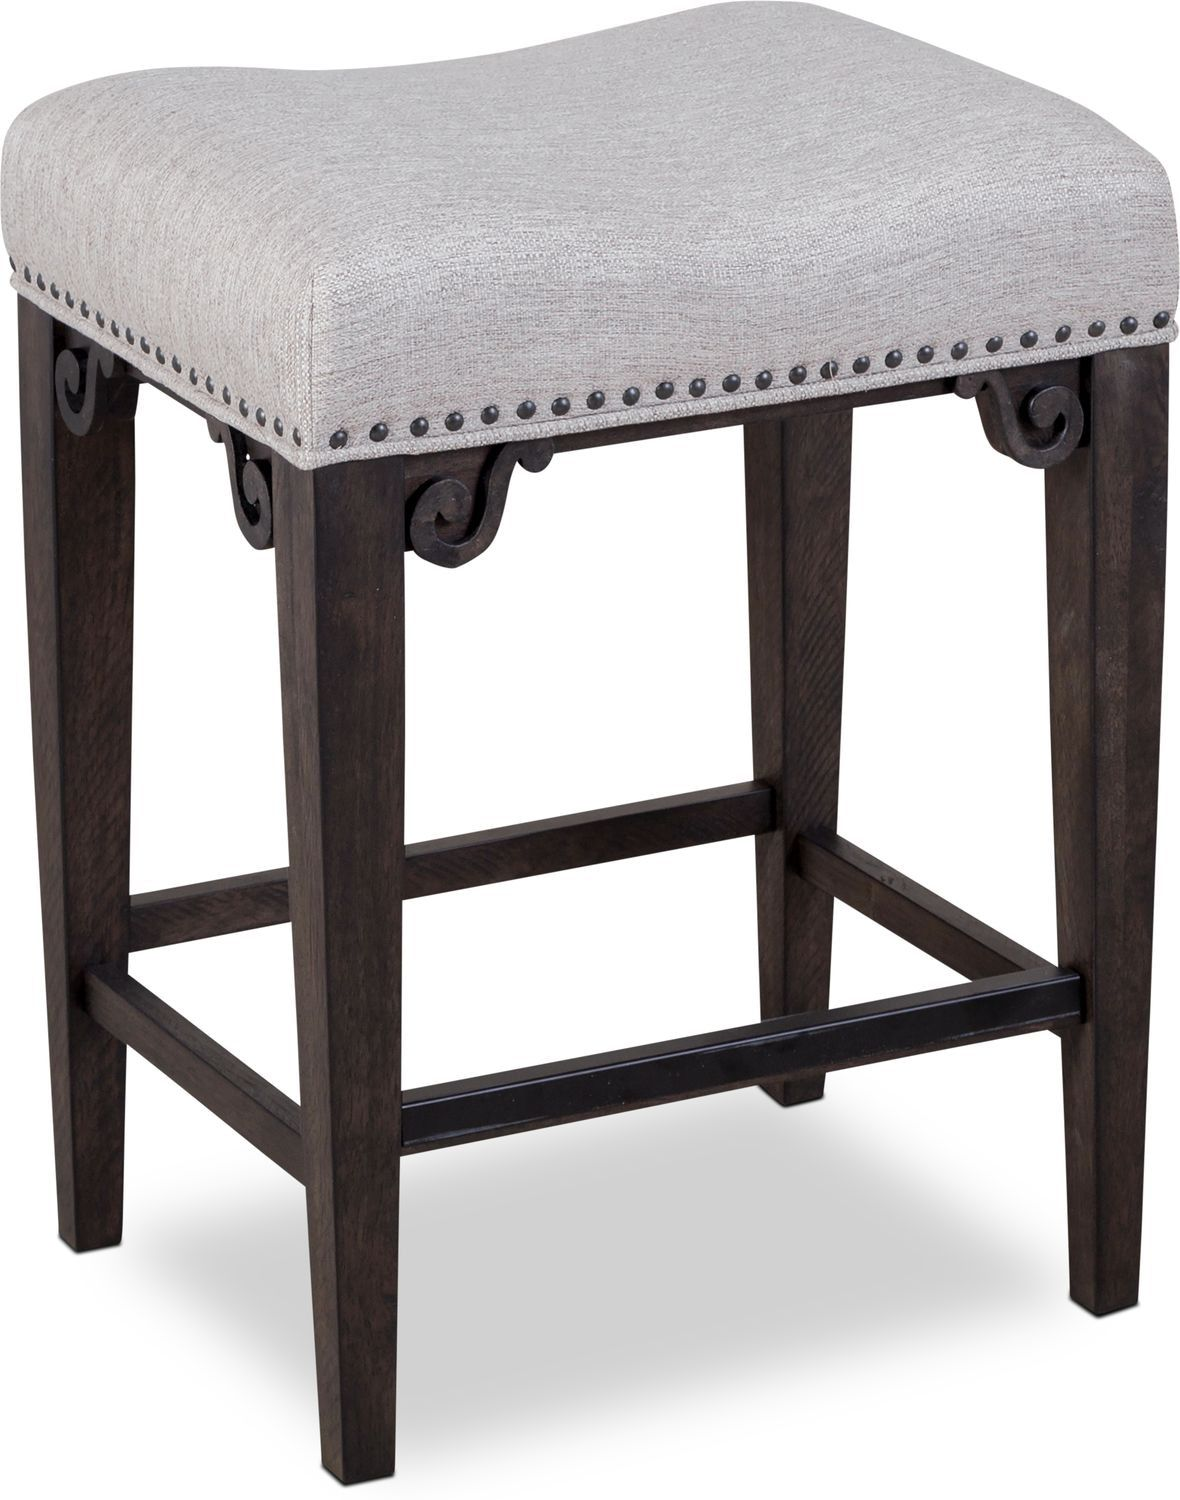 Charthouse Counter Height Backless Stool Charcoal Gray Value City Furniture Backless Bar Stools City Furniture